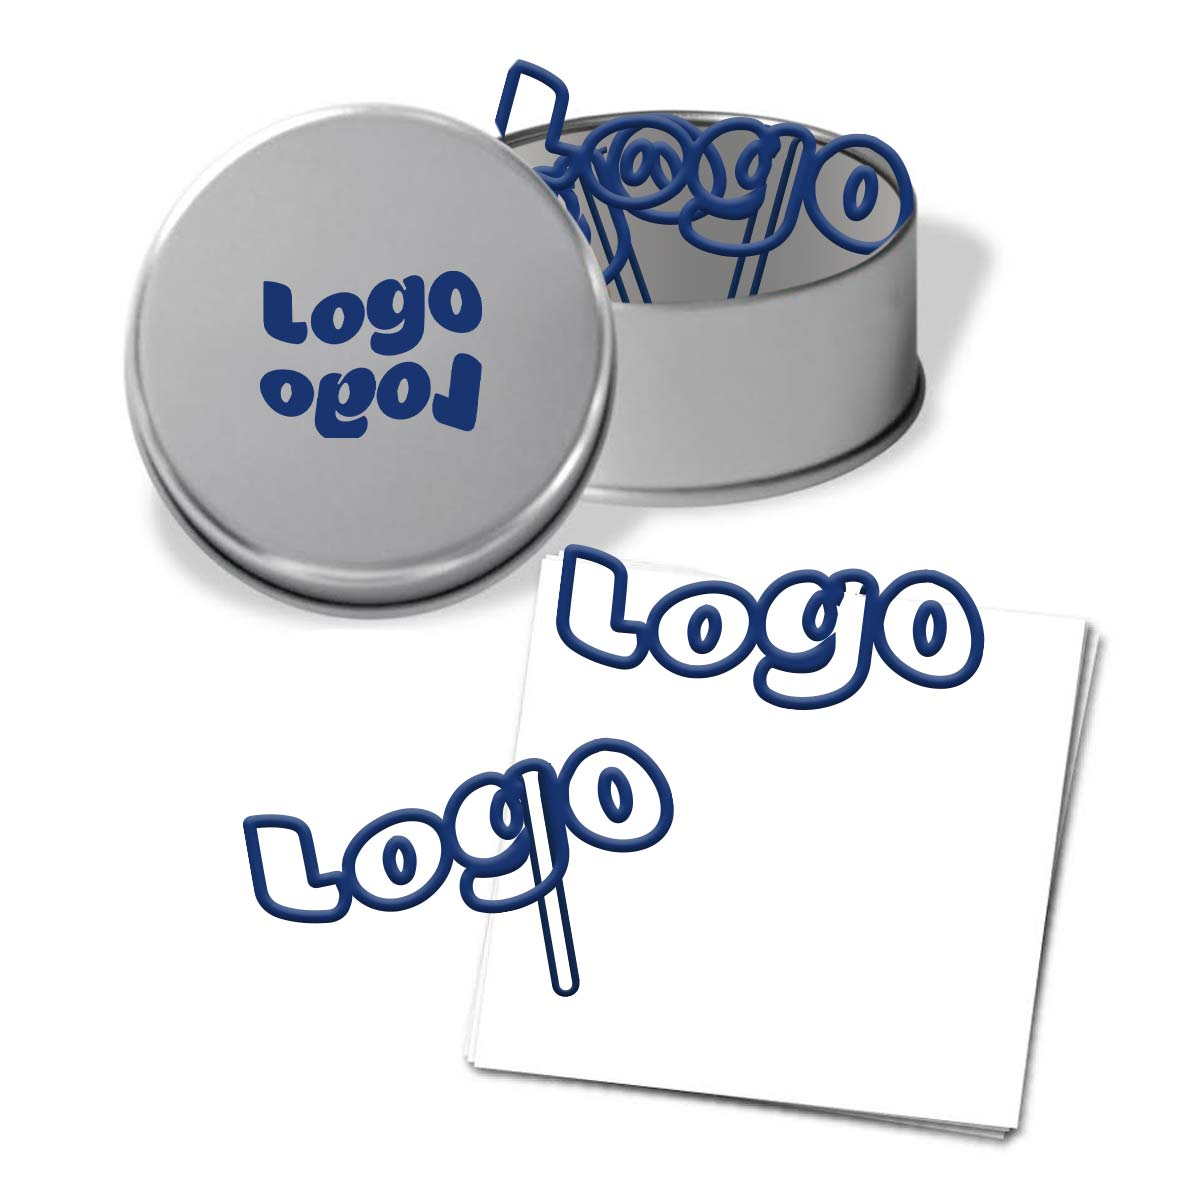 267914 logo paperclips custom shaped paperclip one color imprint on lid